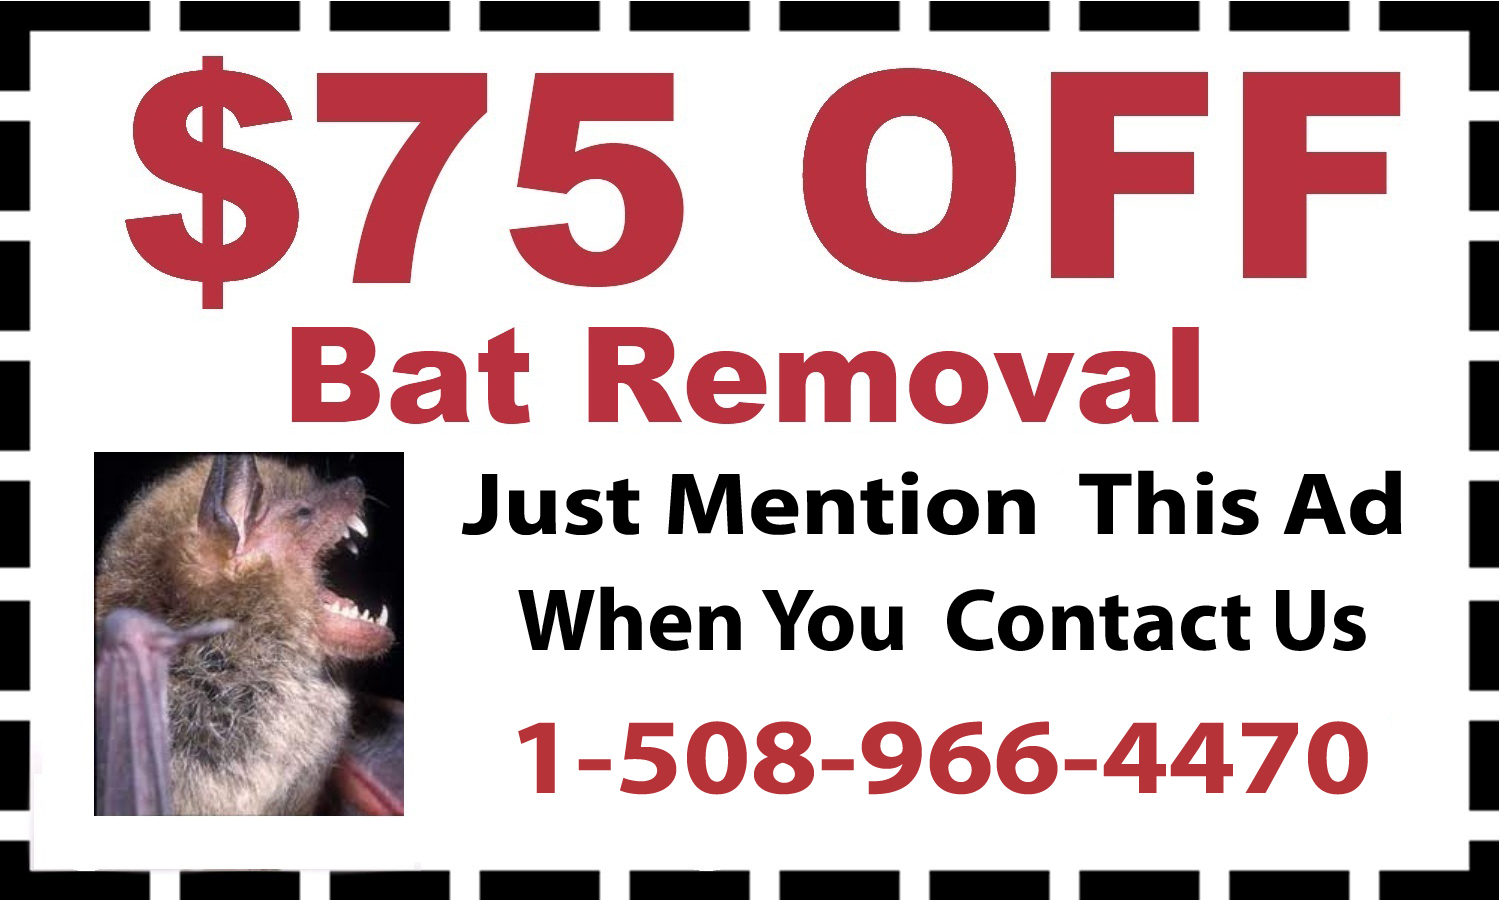 Bat Removal Natick, MA